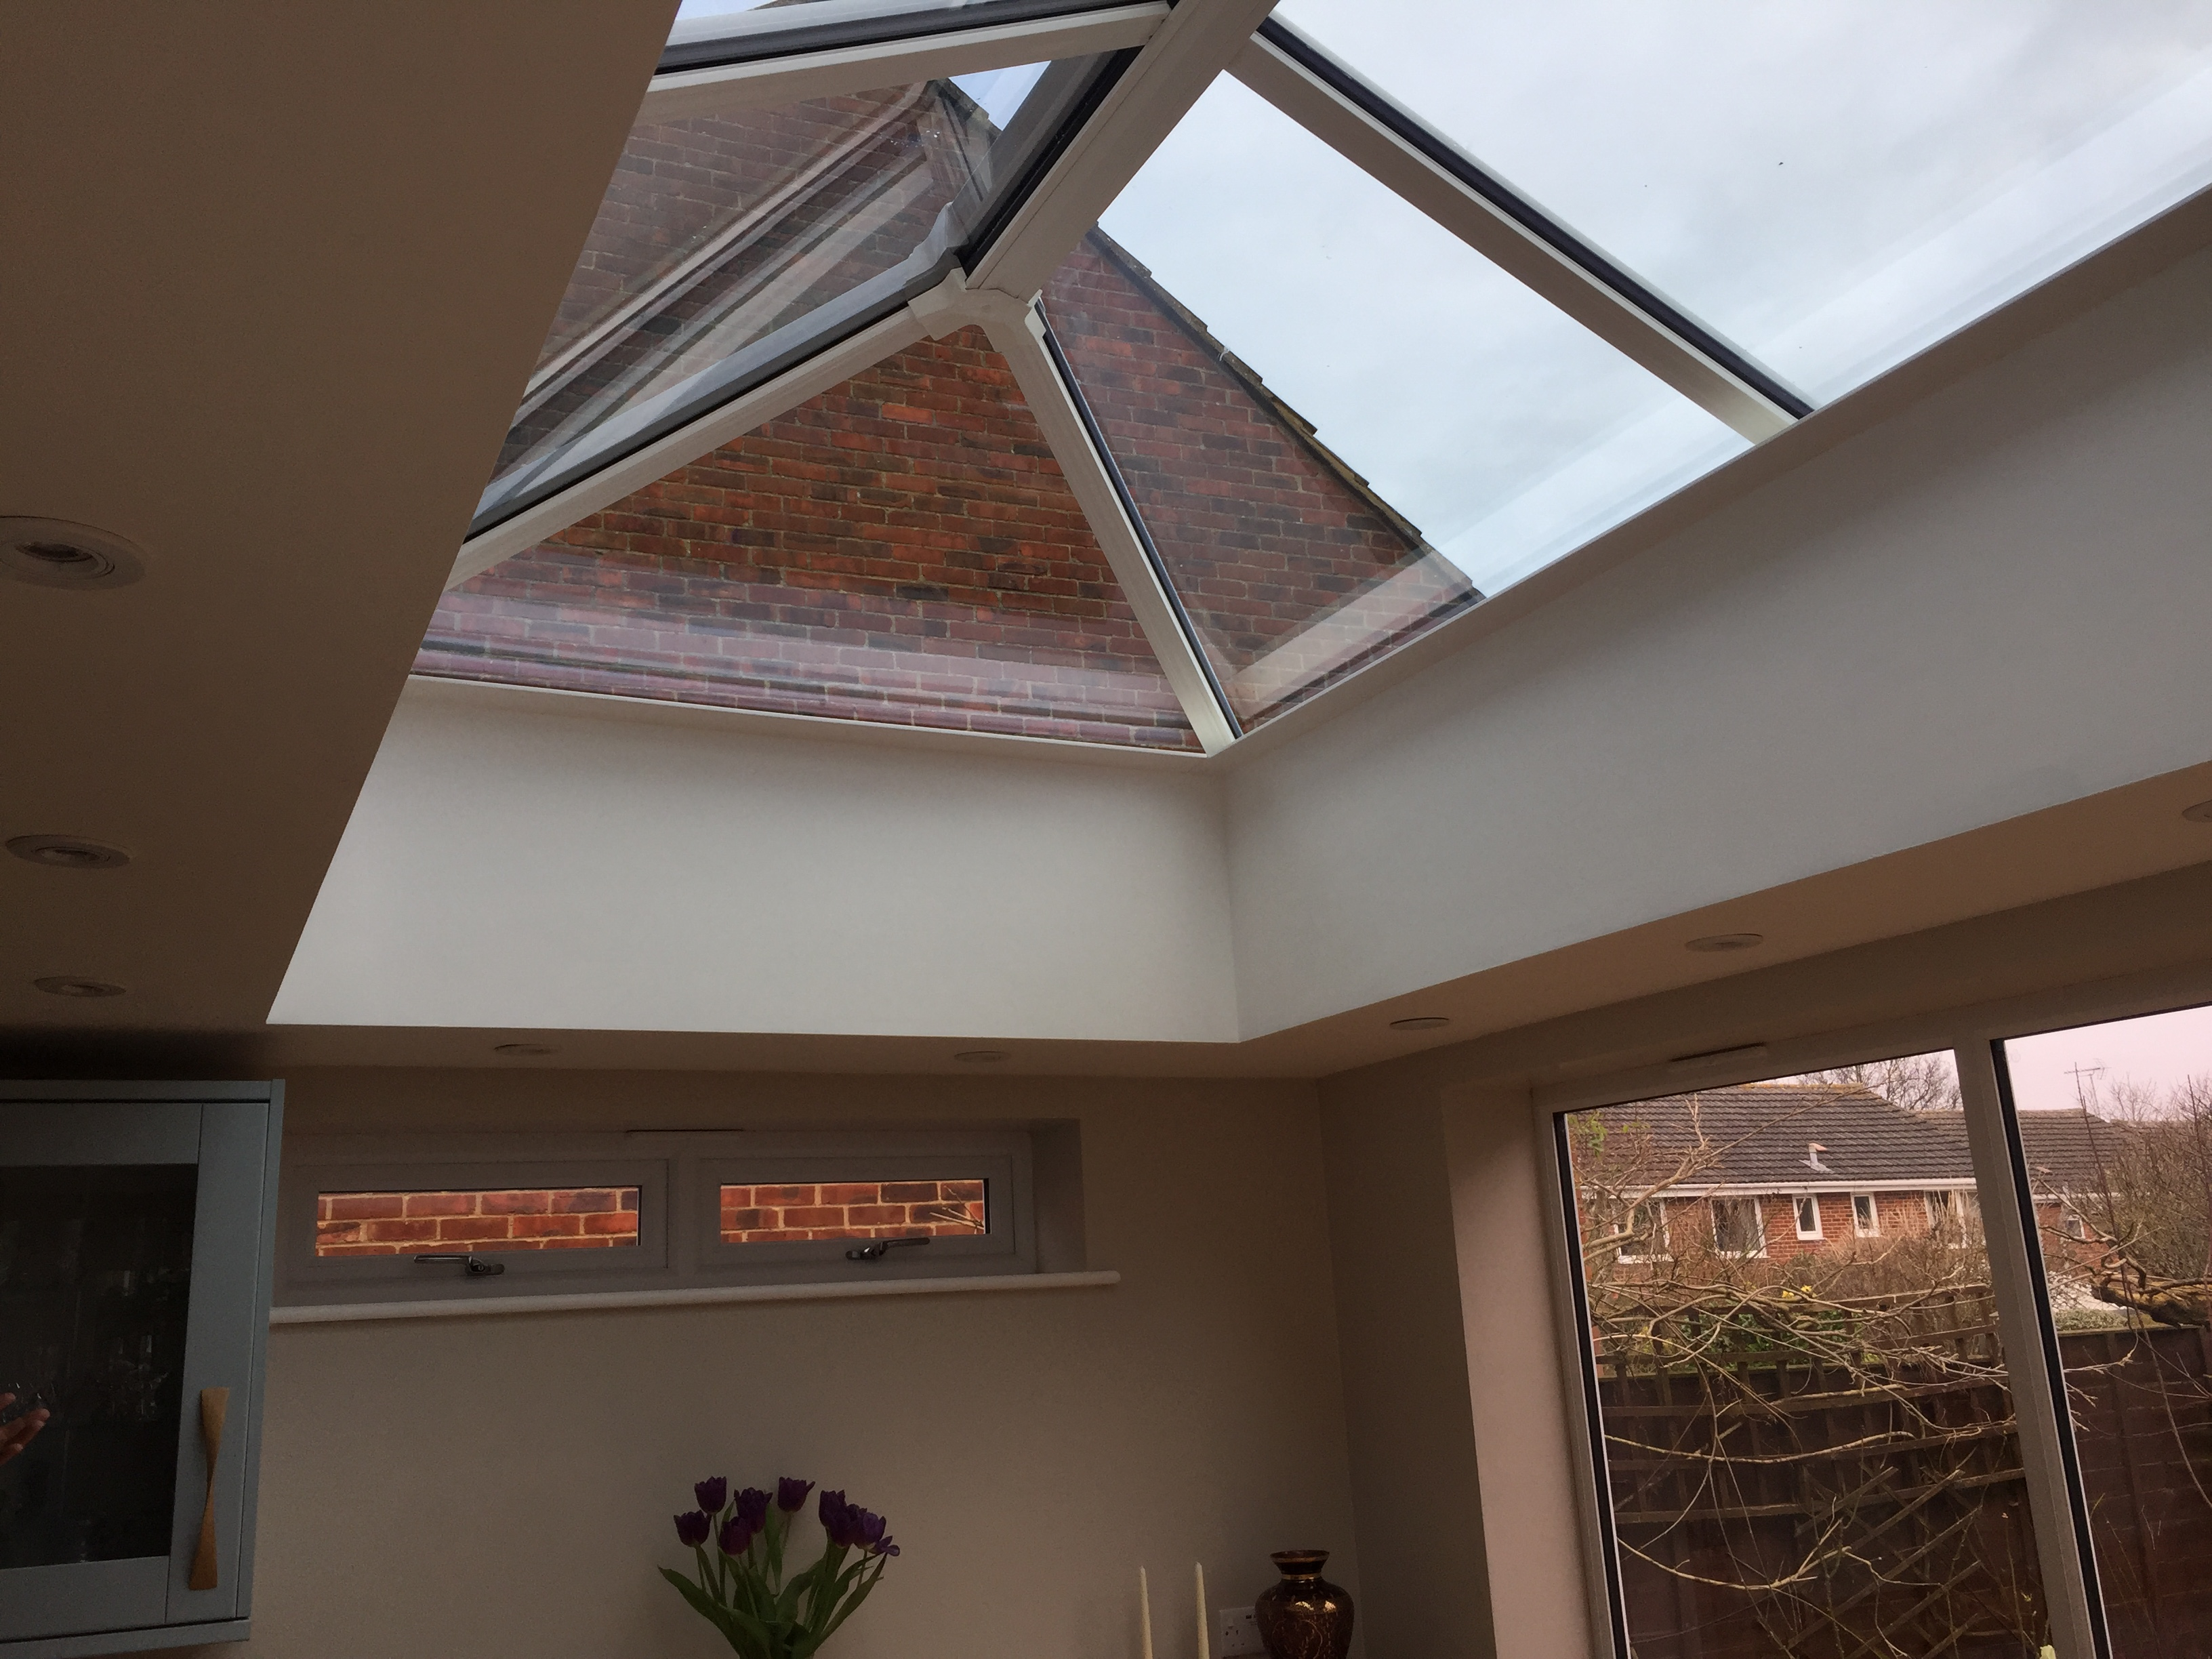 COTSWOLD CREATIVE LANTERN ROOF WORCESTERSHIRE